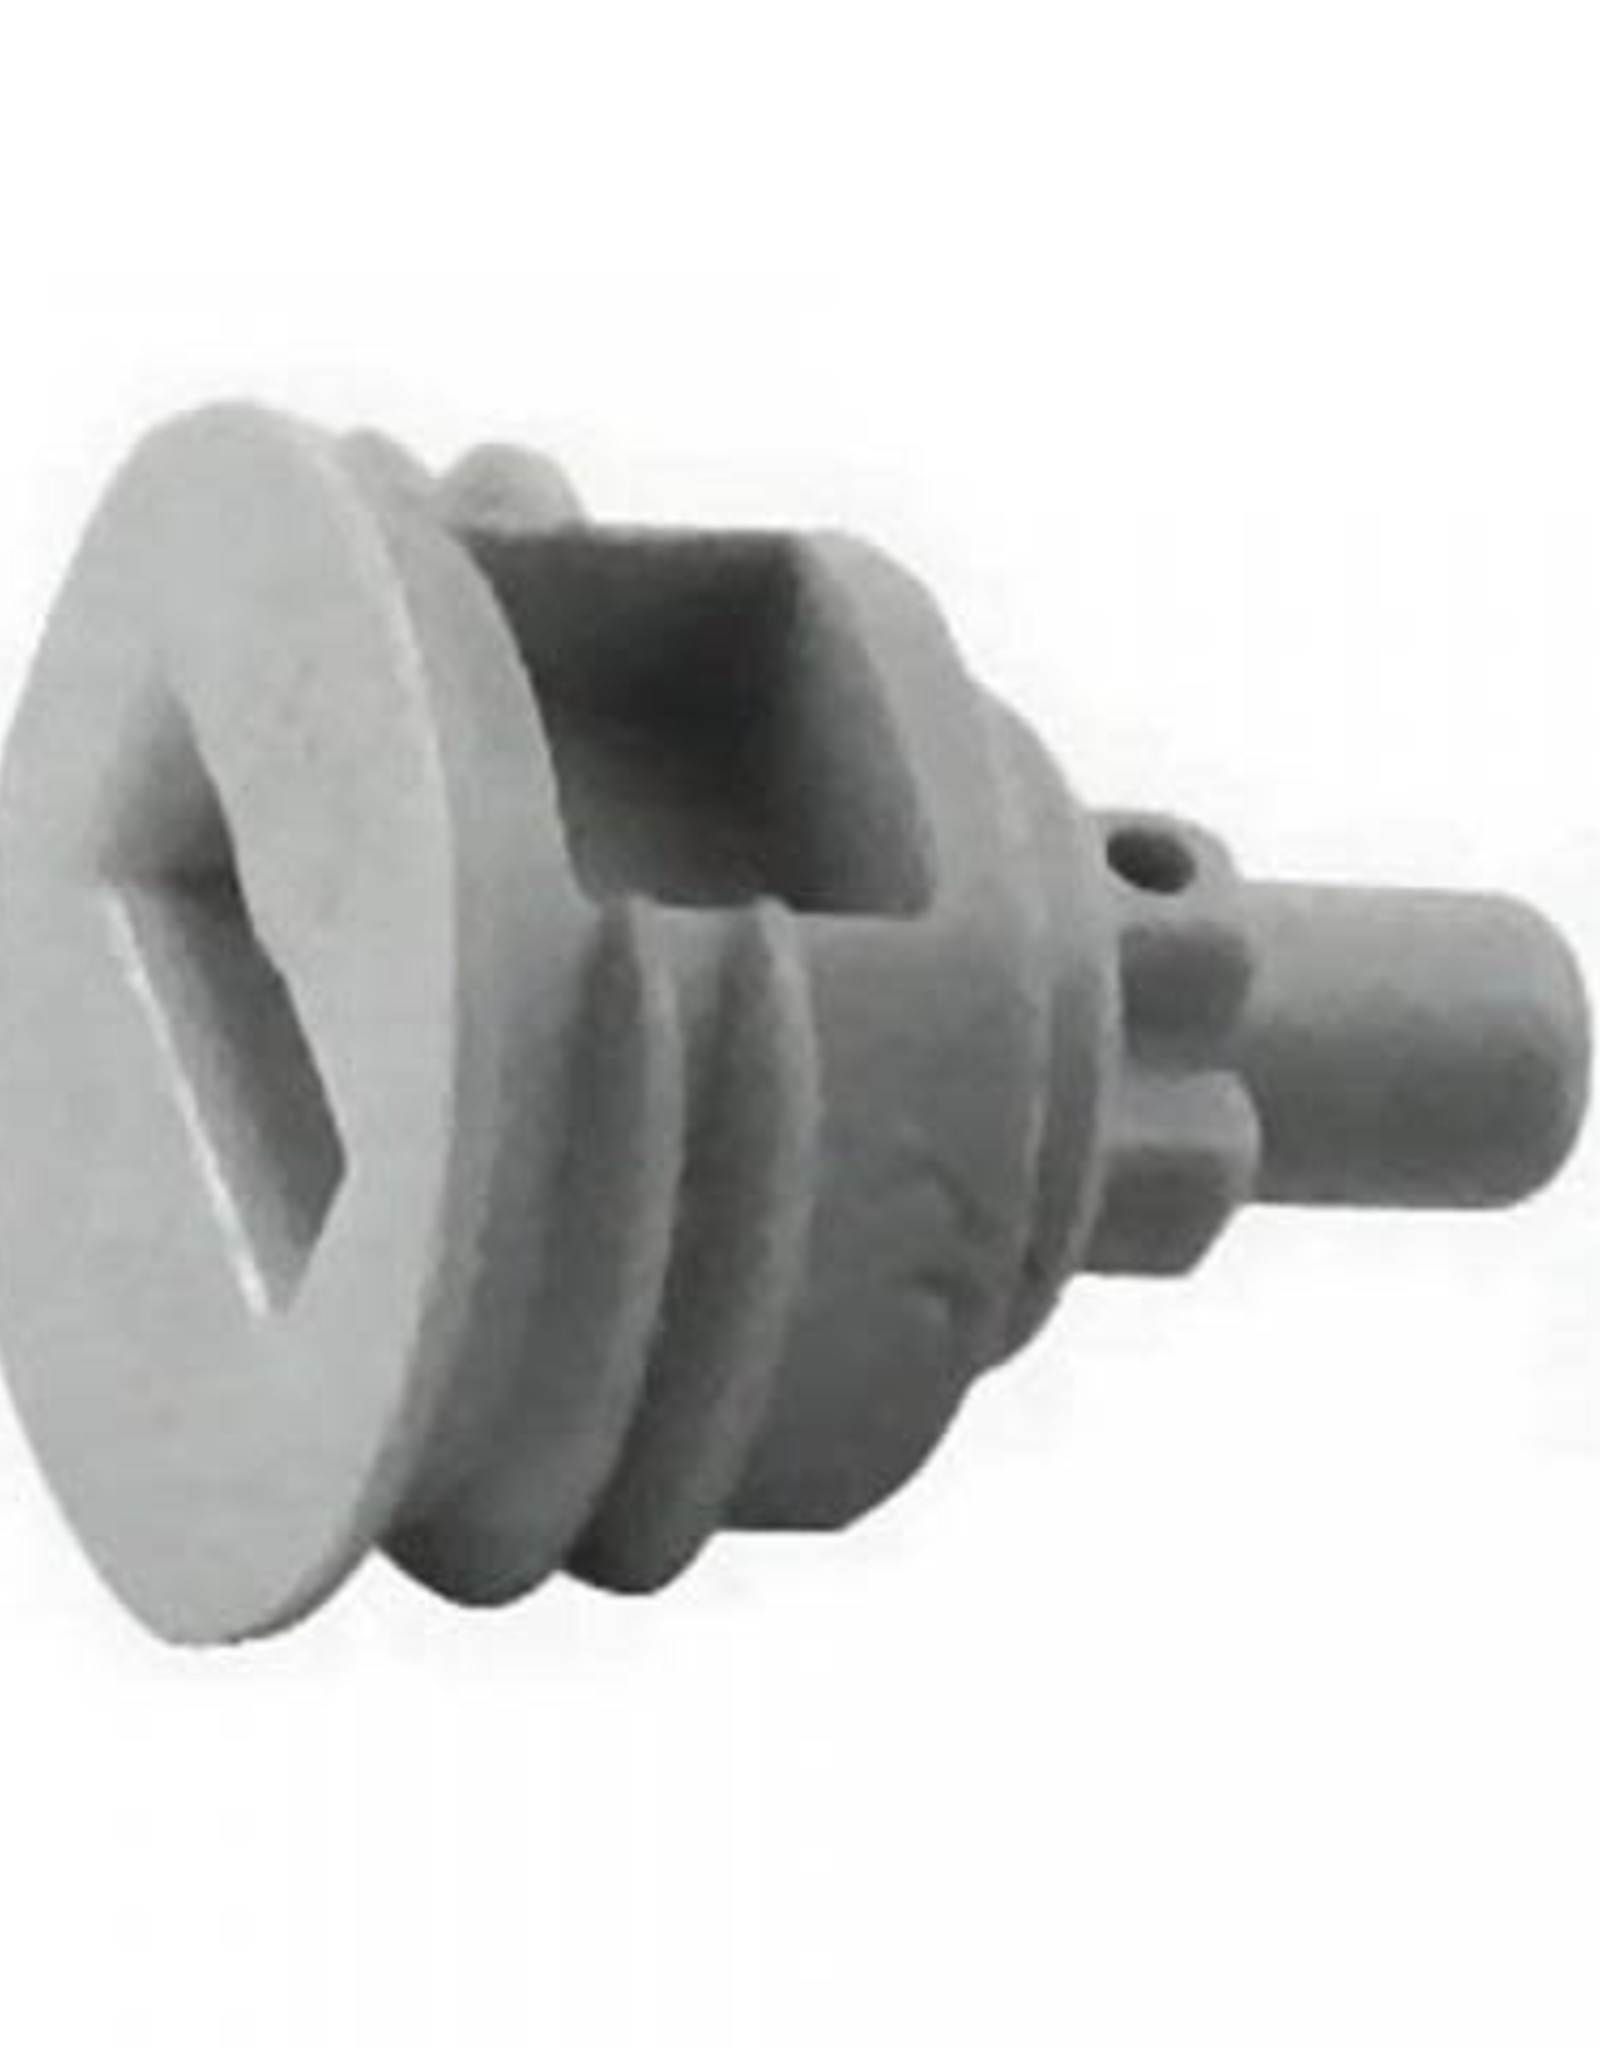 Disconnect Cap Plug, Ball Lock (Gray)